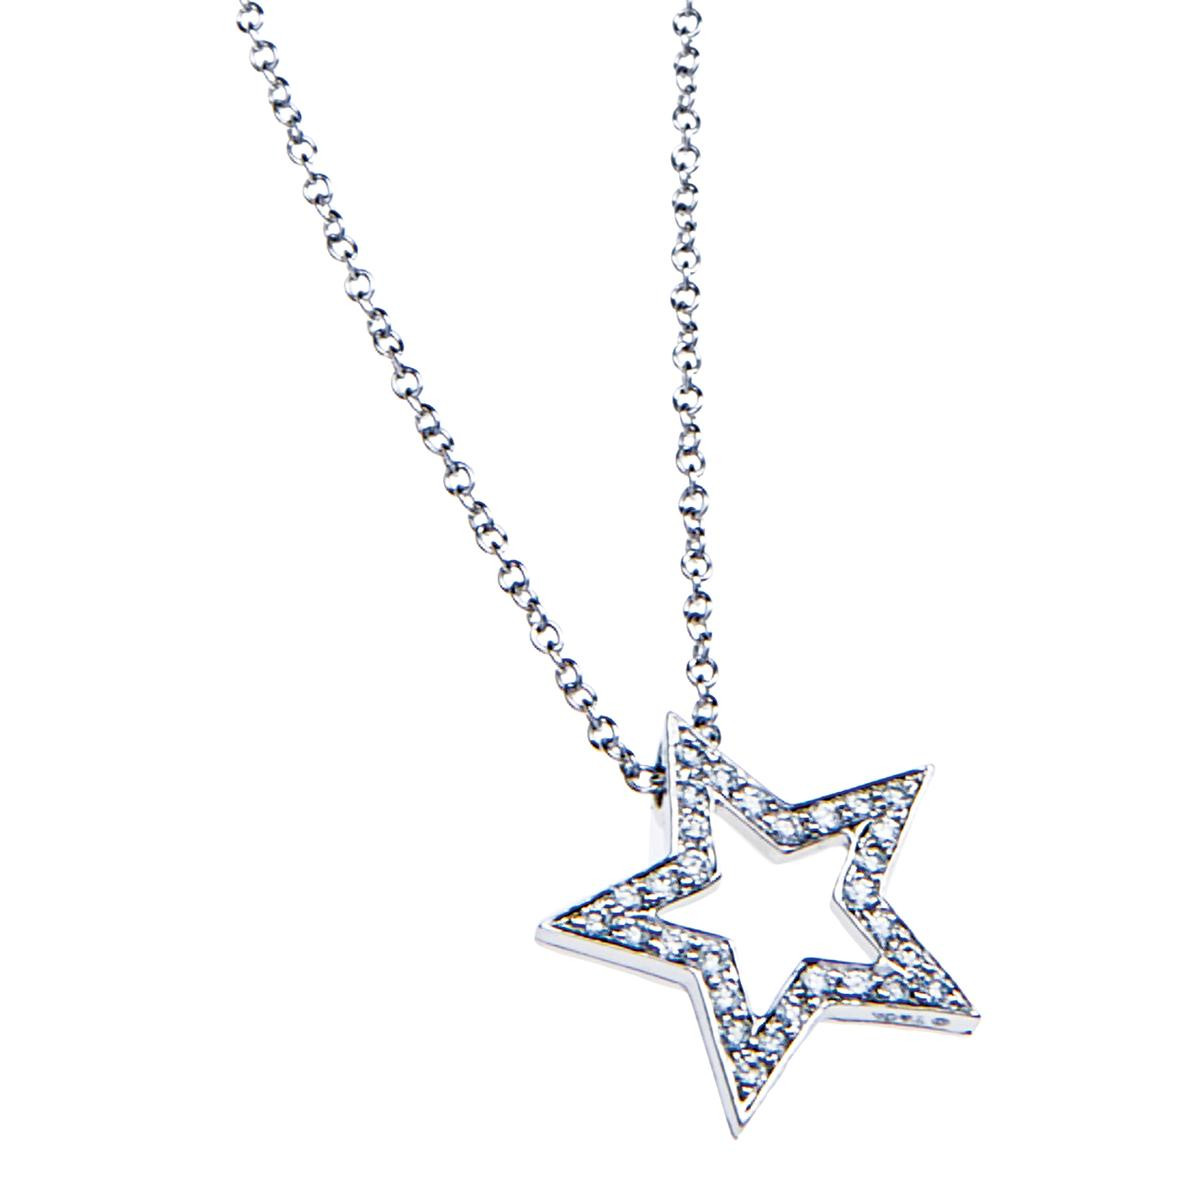 Tiffany co diamond star pendant diamond star pendant gallery image aloadofball Images